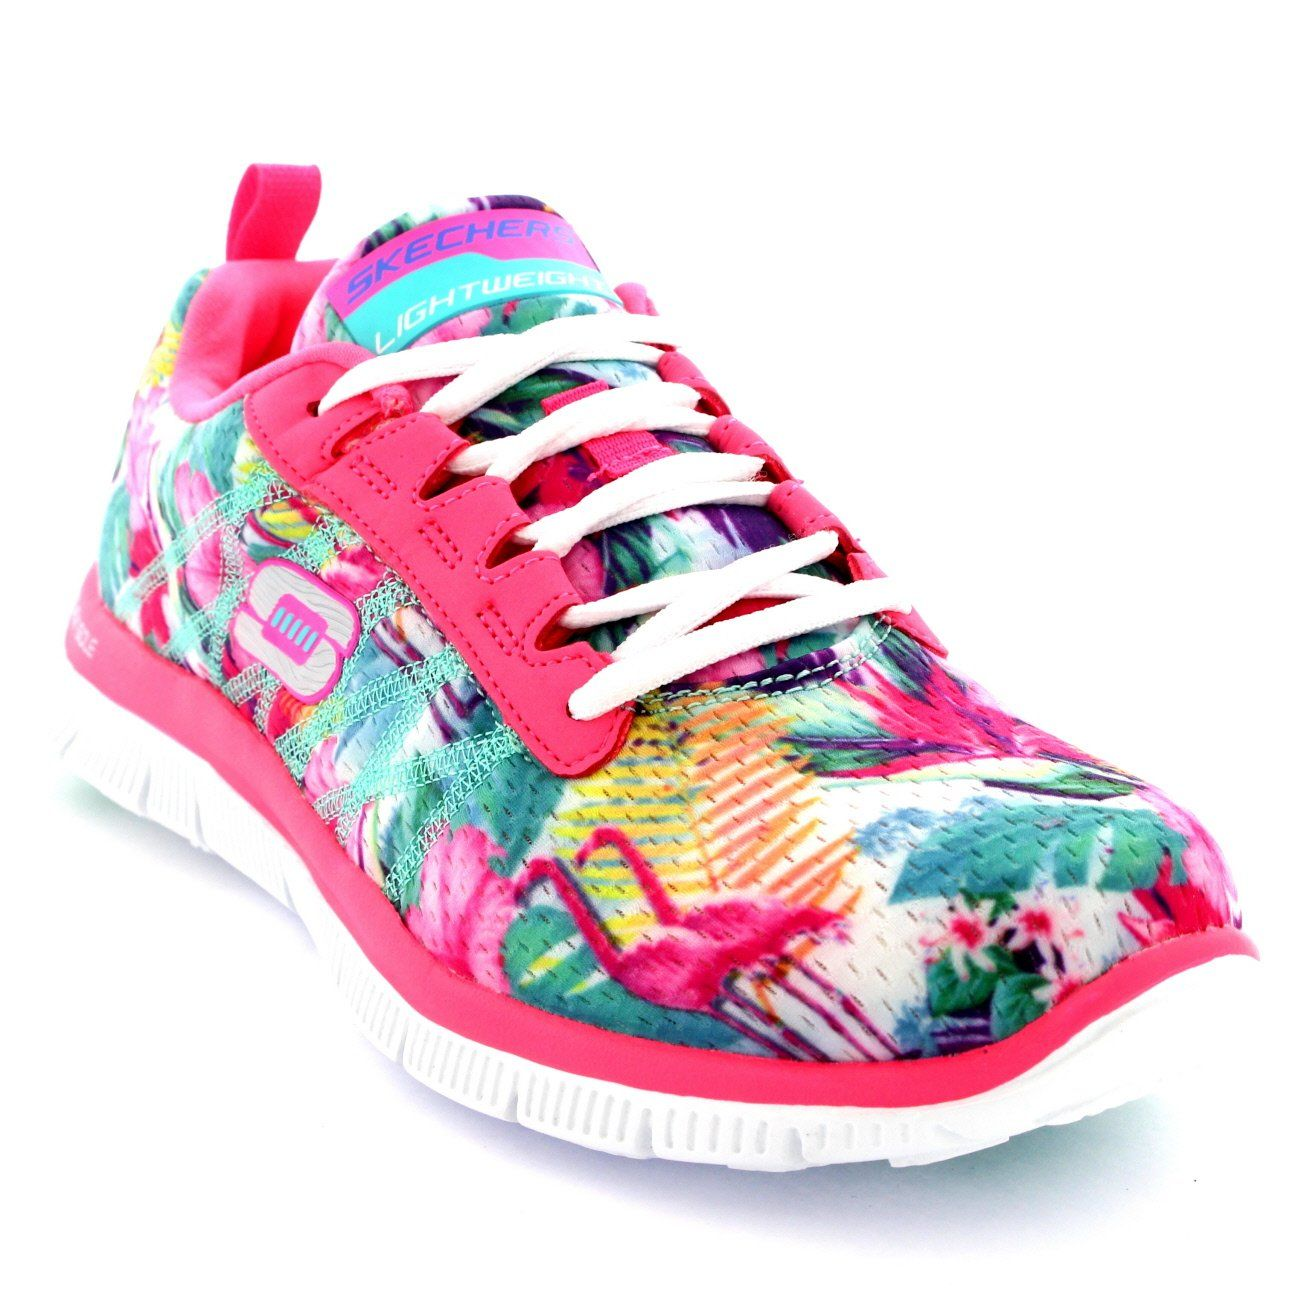 01d77156c573 Womens Skechers Flex Appeal Floral Bloom Sports Running Walking Trainers -  Pink Multi - 7